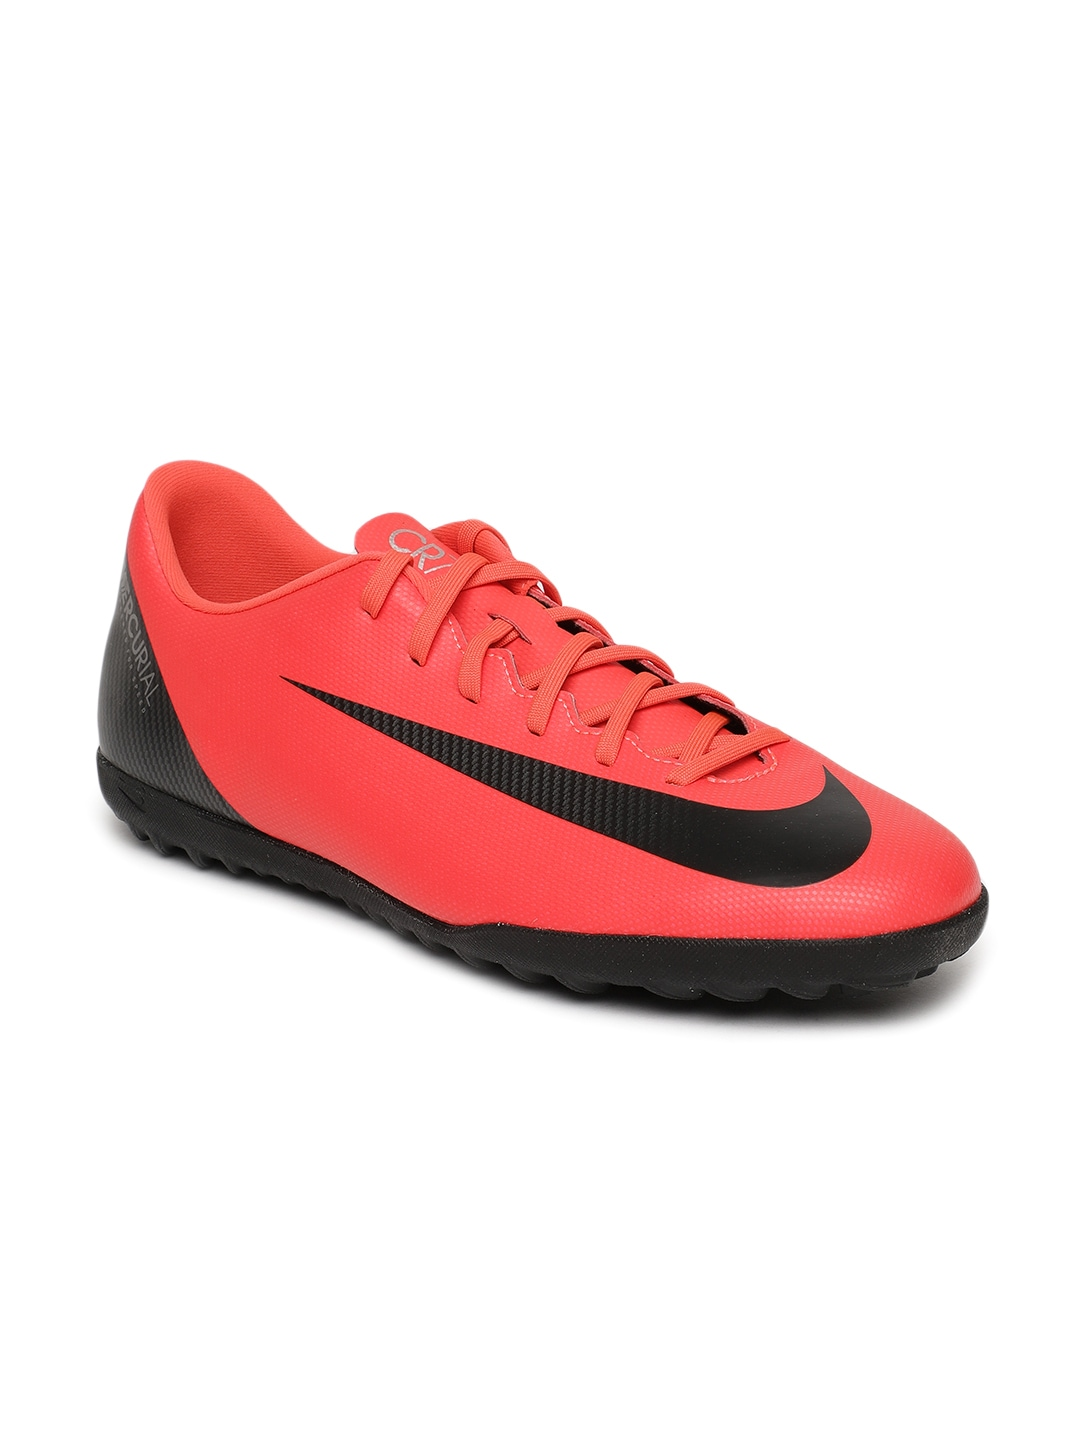 ca14adfd57619 Nike Red Shoes - Buy Nike Red Shoes Online in India